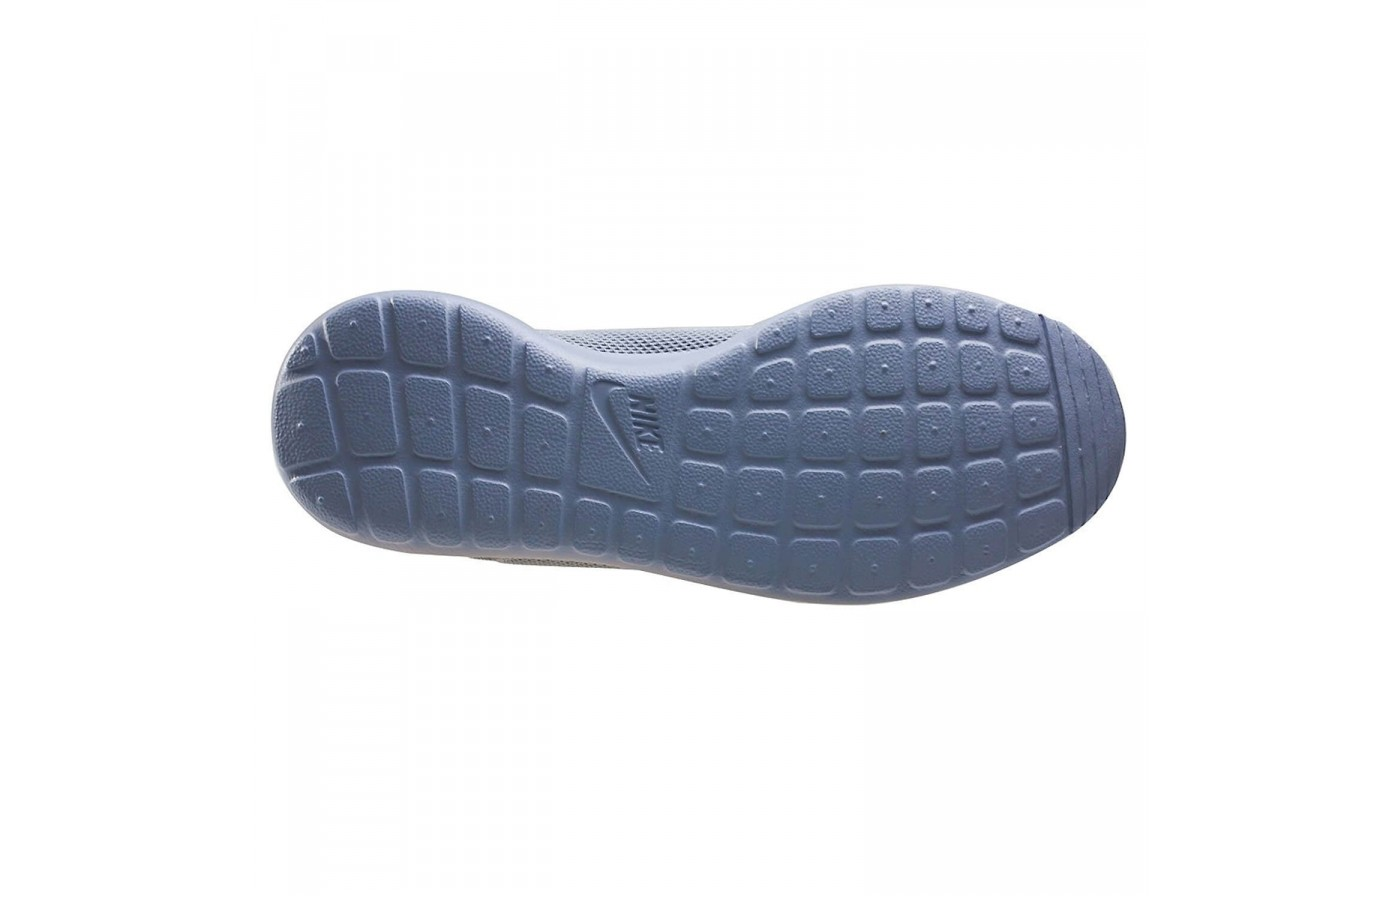 6440fada0695 ... The outsole of the Nike Roshe One SE is made from abrasion-resistant  rubber.